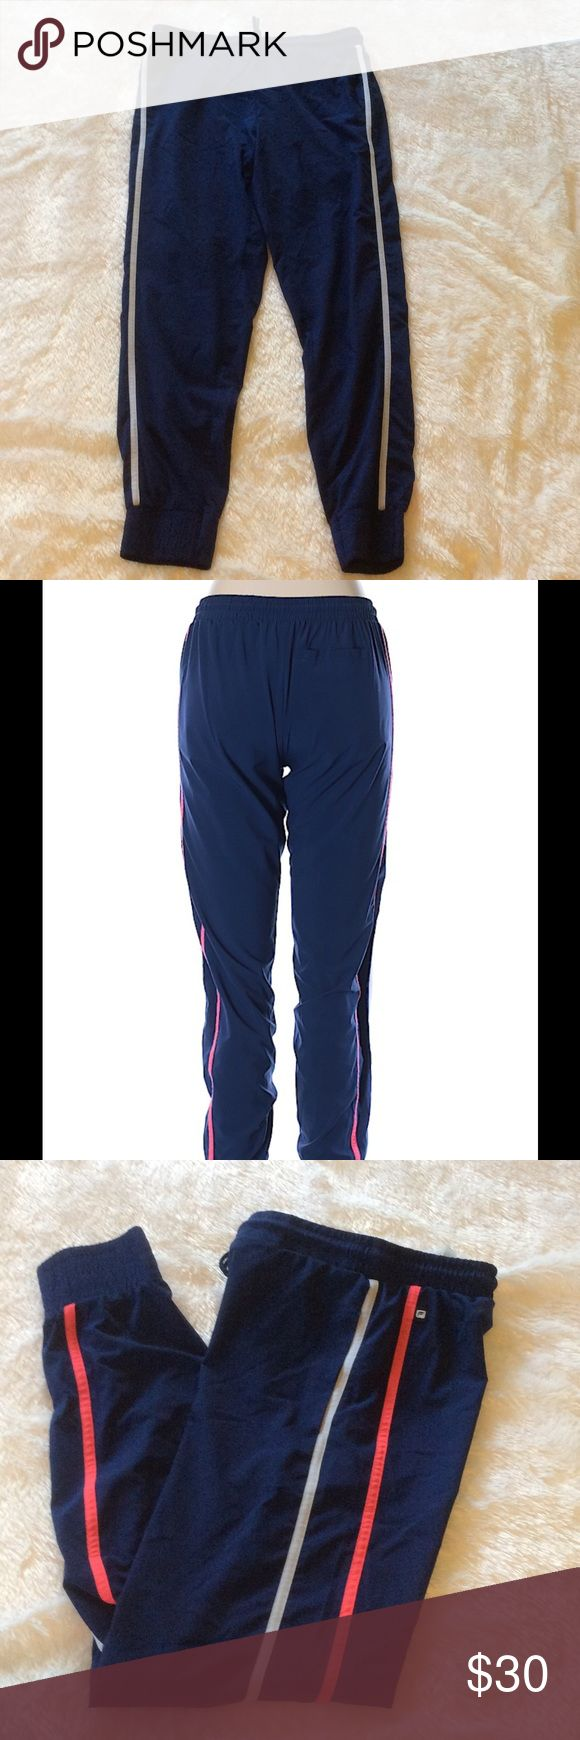 Fabletics cuffed joggers These are so cute! Lightweight navy joggers with thin pink and white stripes down the legs. Slim fit and cuffed ankles make for a great silhouette. Worn once. Size xs (I wish I could keep them but they're just a tiny bit too small for me). Fabletics Pants Track Pants & Joggers